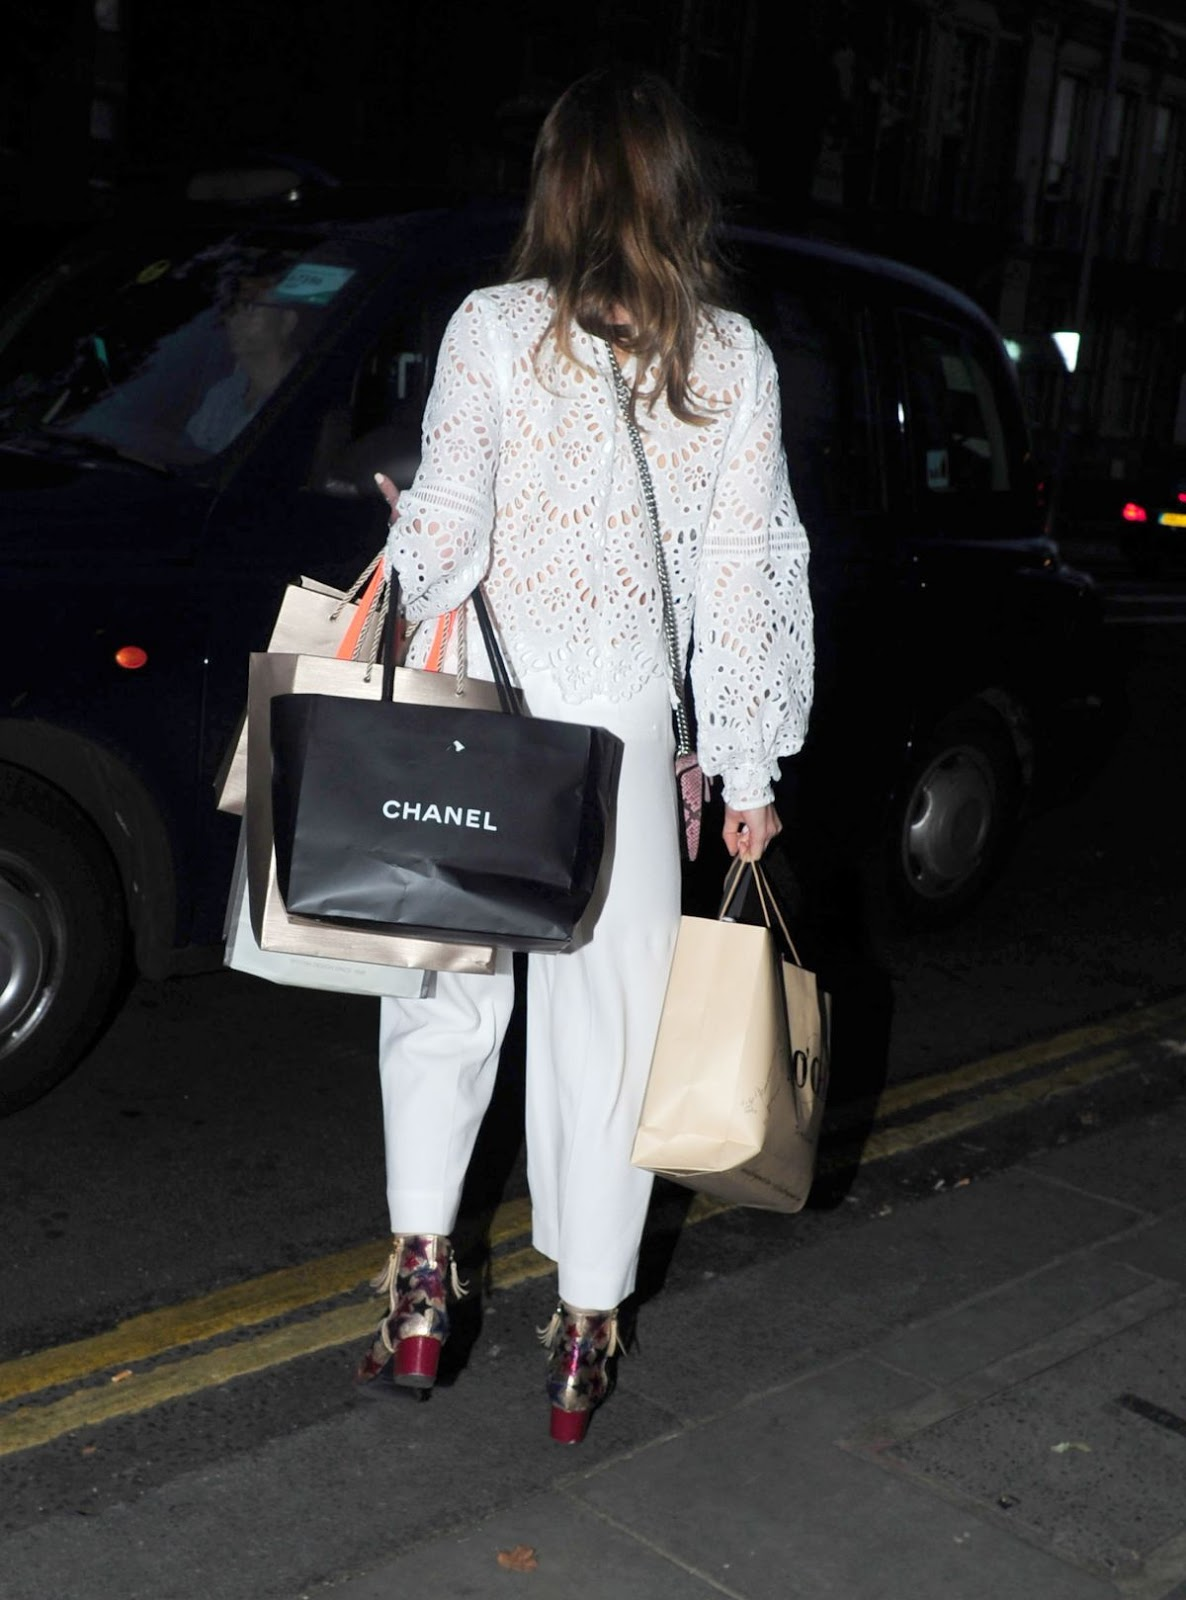 Rosie Fortescue at IVY Garden in Chelsea